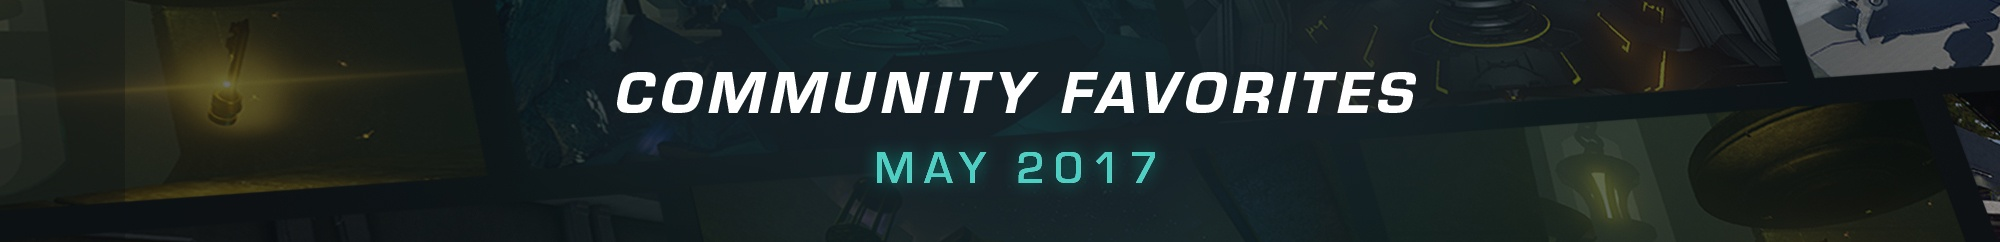 Community Favs Banner May 2017.jpg